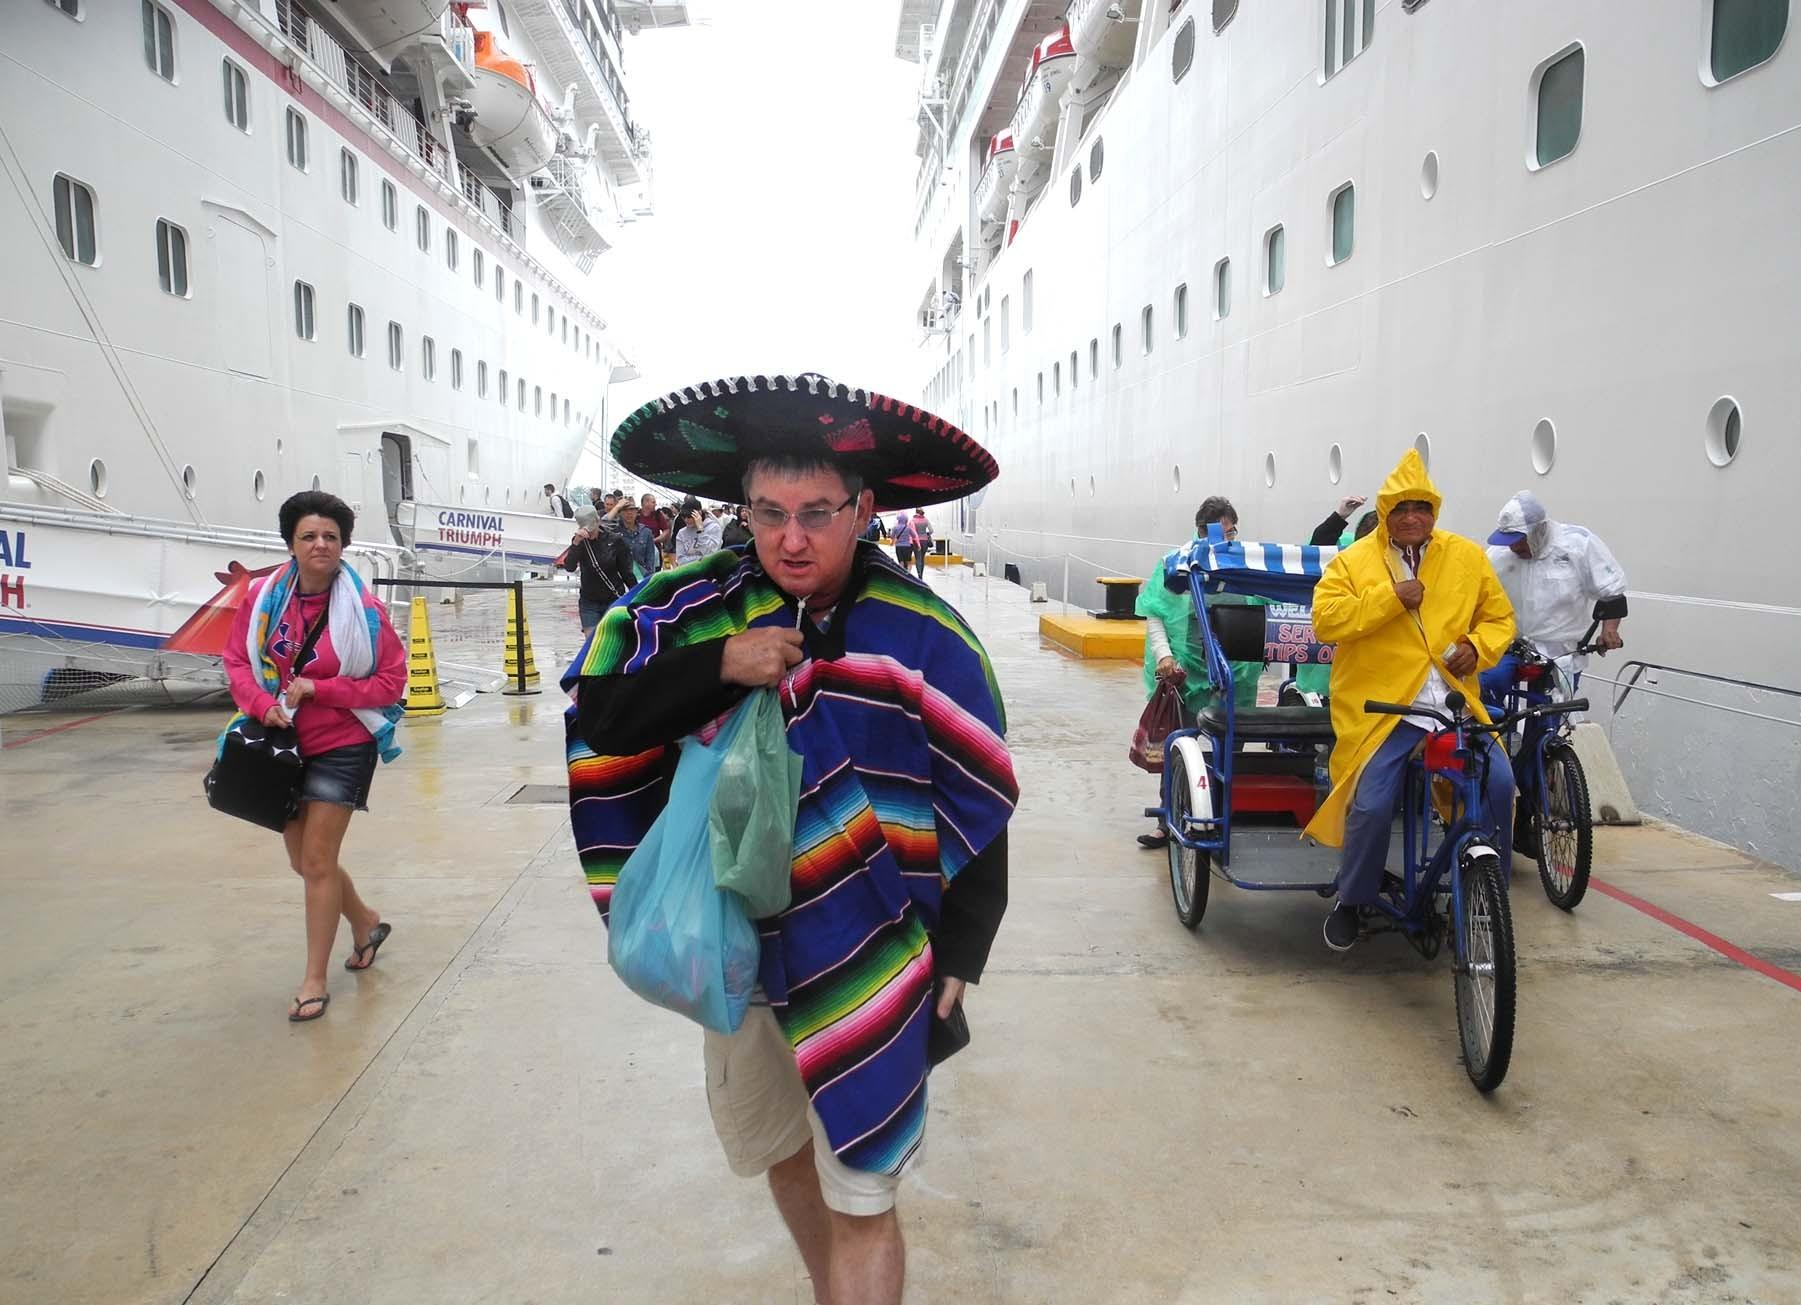 A tourist returns to his cruise ship in Cozumel, Mexico, after buying souvenirs on Jan. 13, 2014.